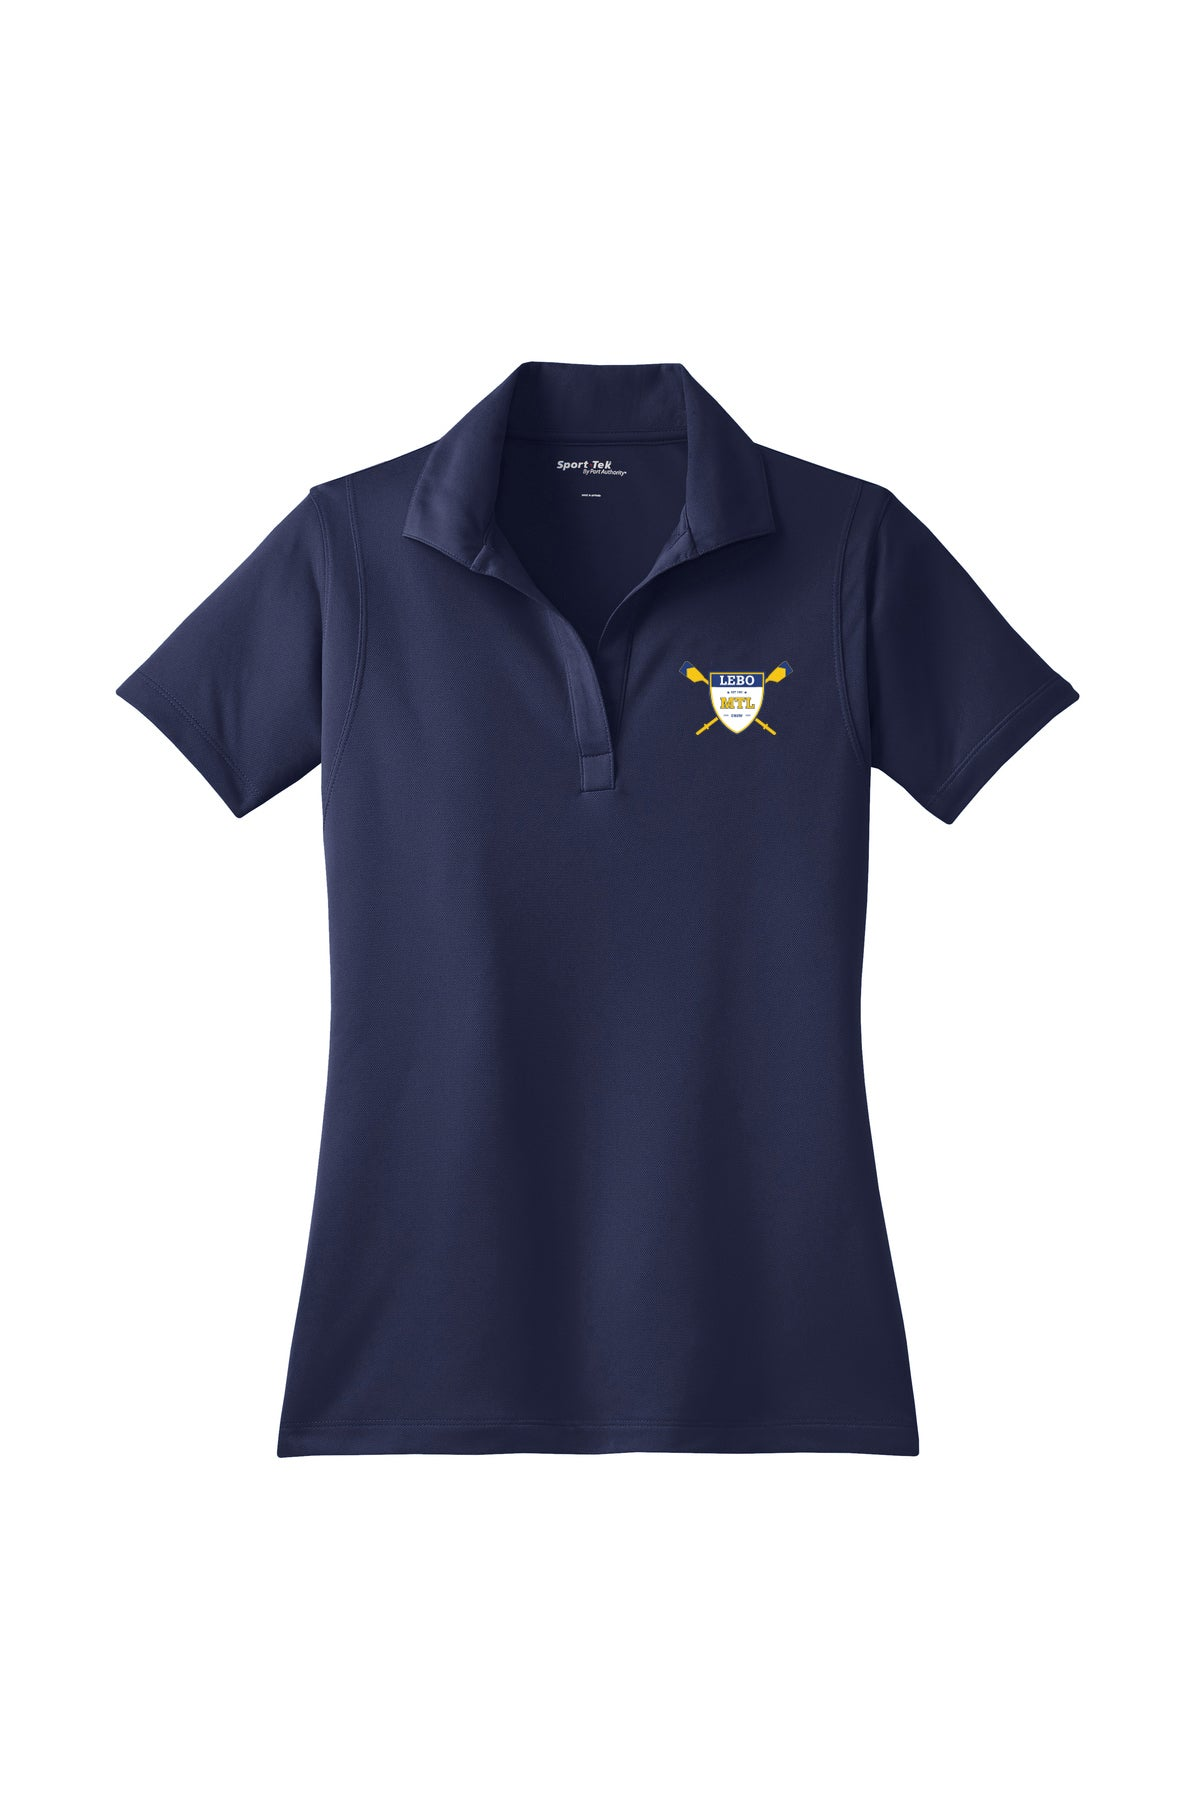 MT Lebanon Rowing Embroidered Performance Ladies Polo